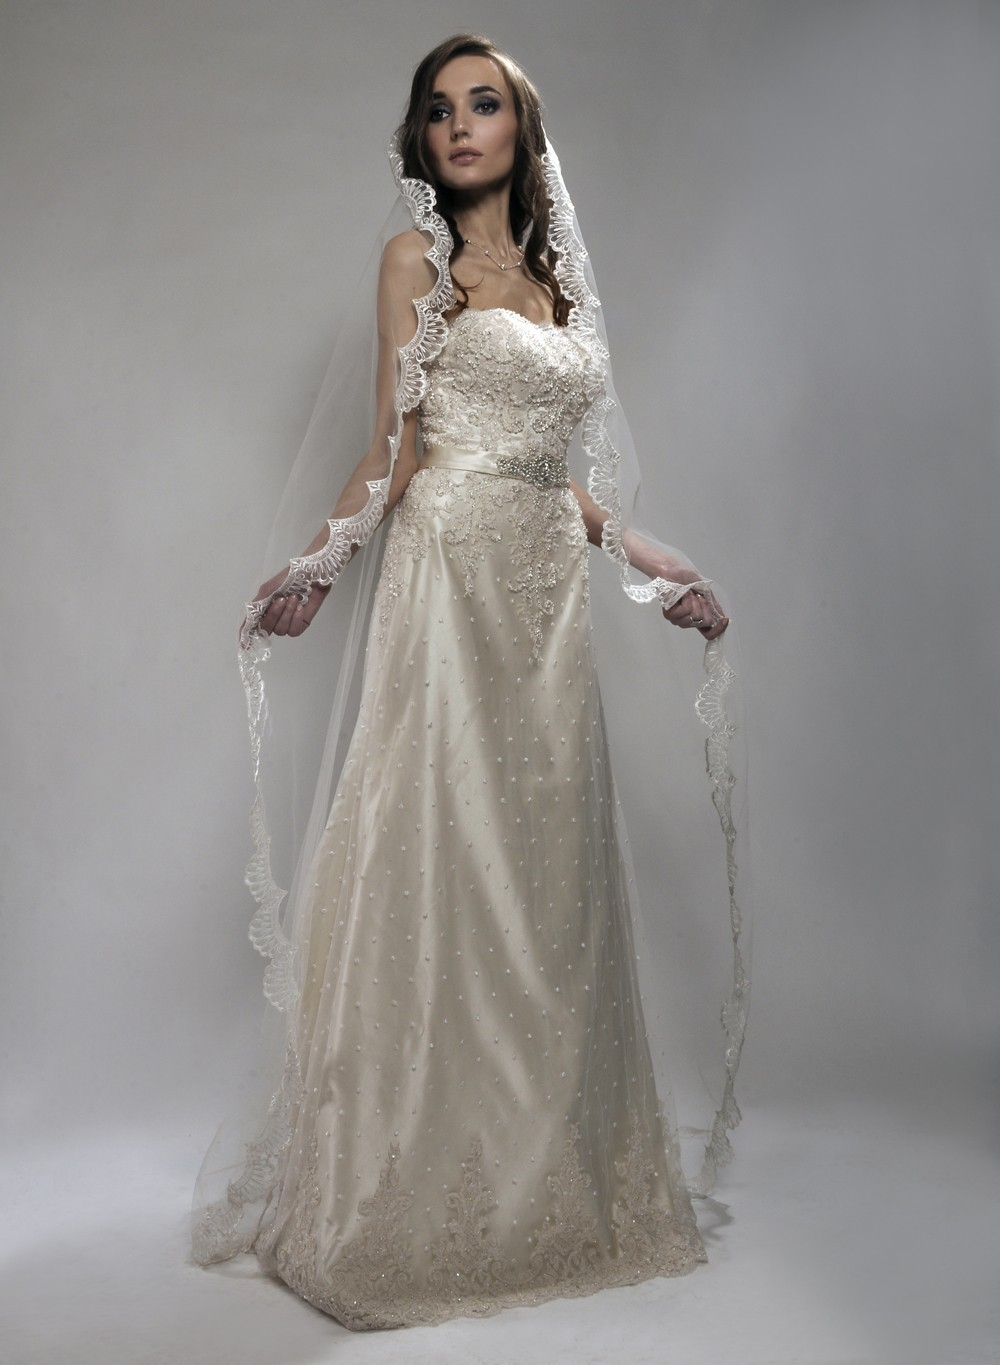 Long Bridal Veils From Fingertip To Dramatic Cathedral Length Stunners